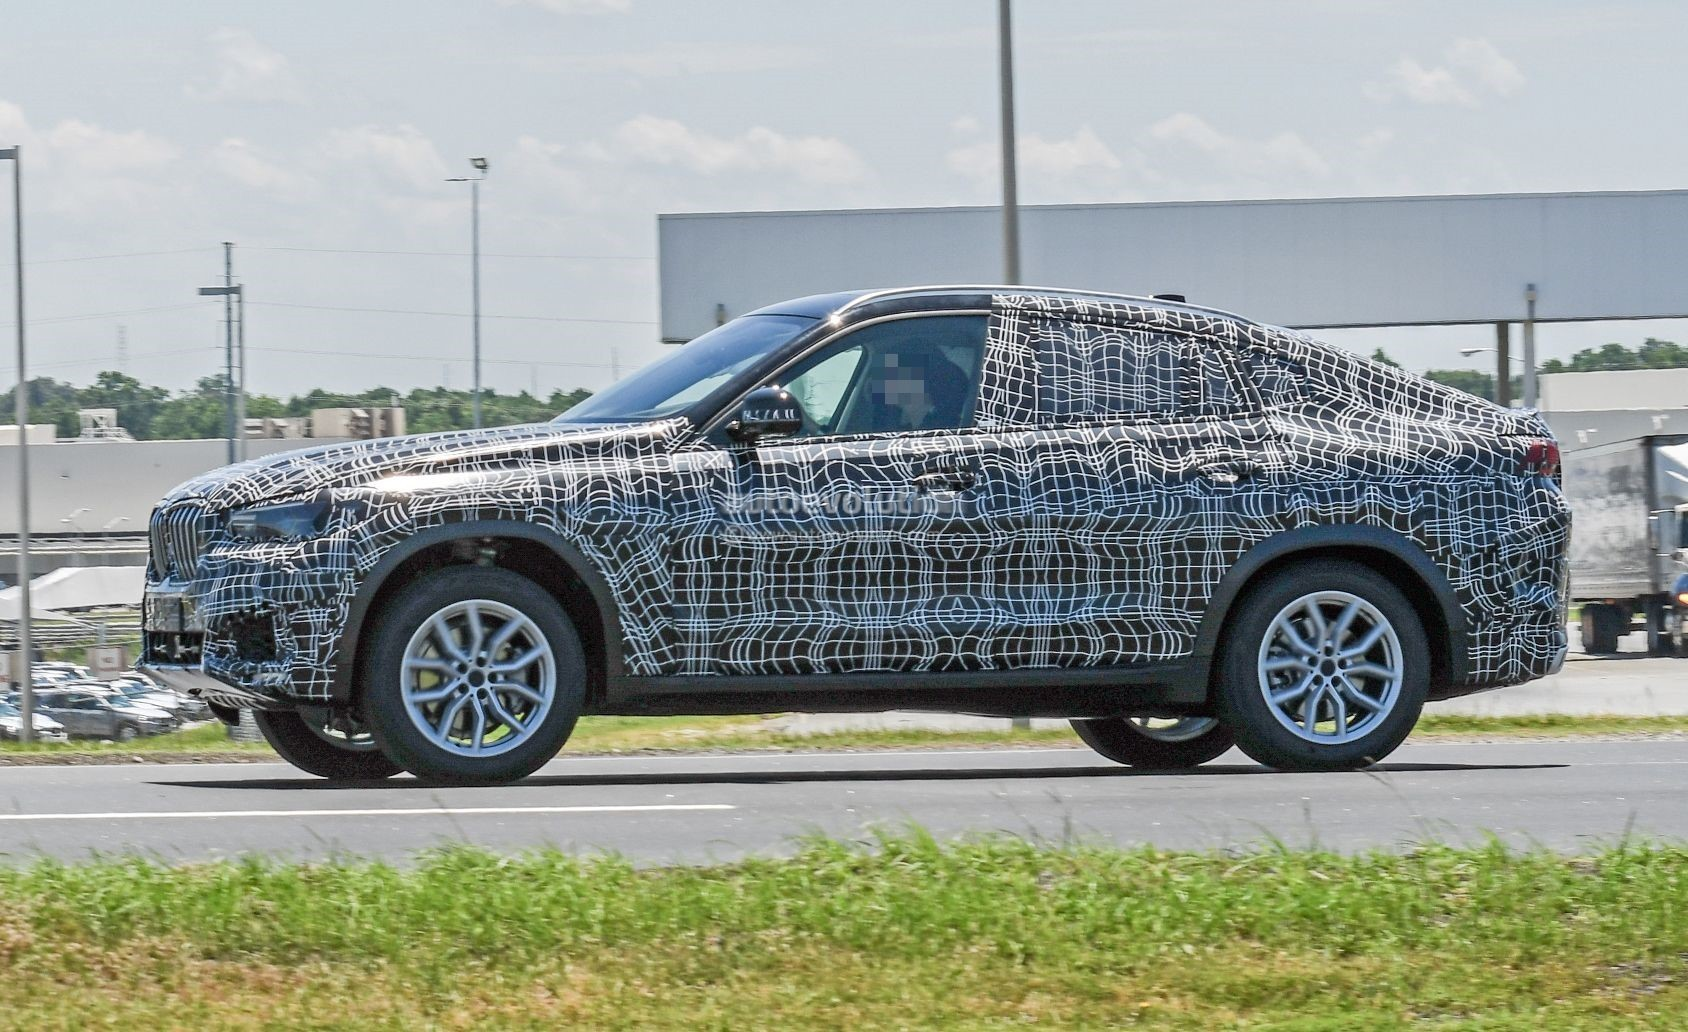 Bmw X3 2018 Pricing >> 2020 BMW X6 (G06) Spied In Spartanburg - autoevolution